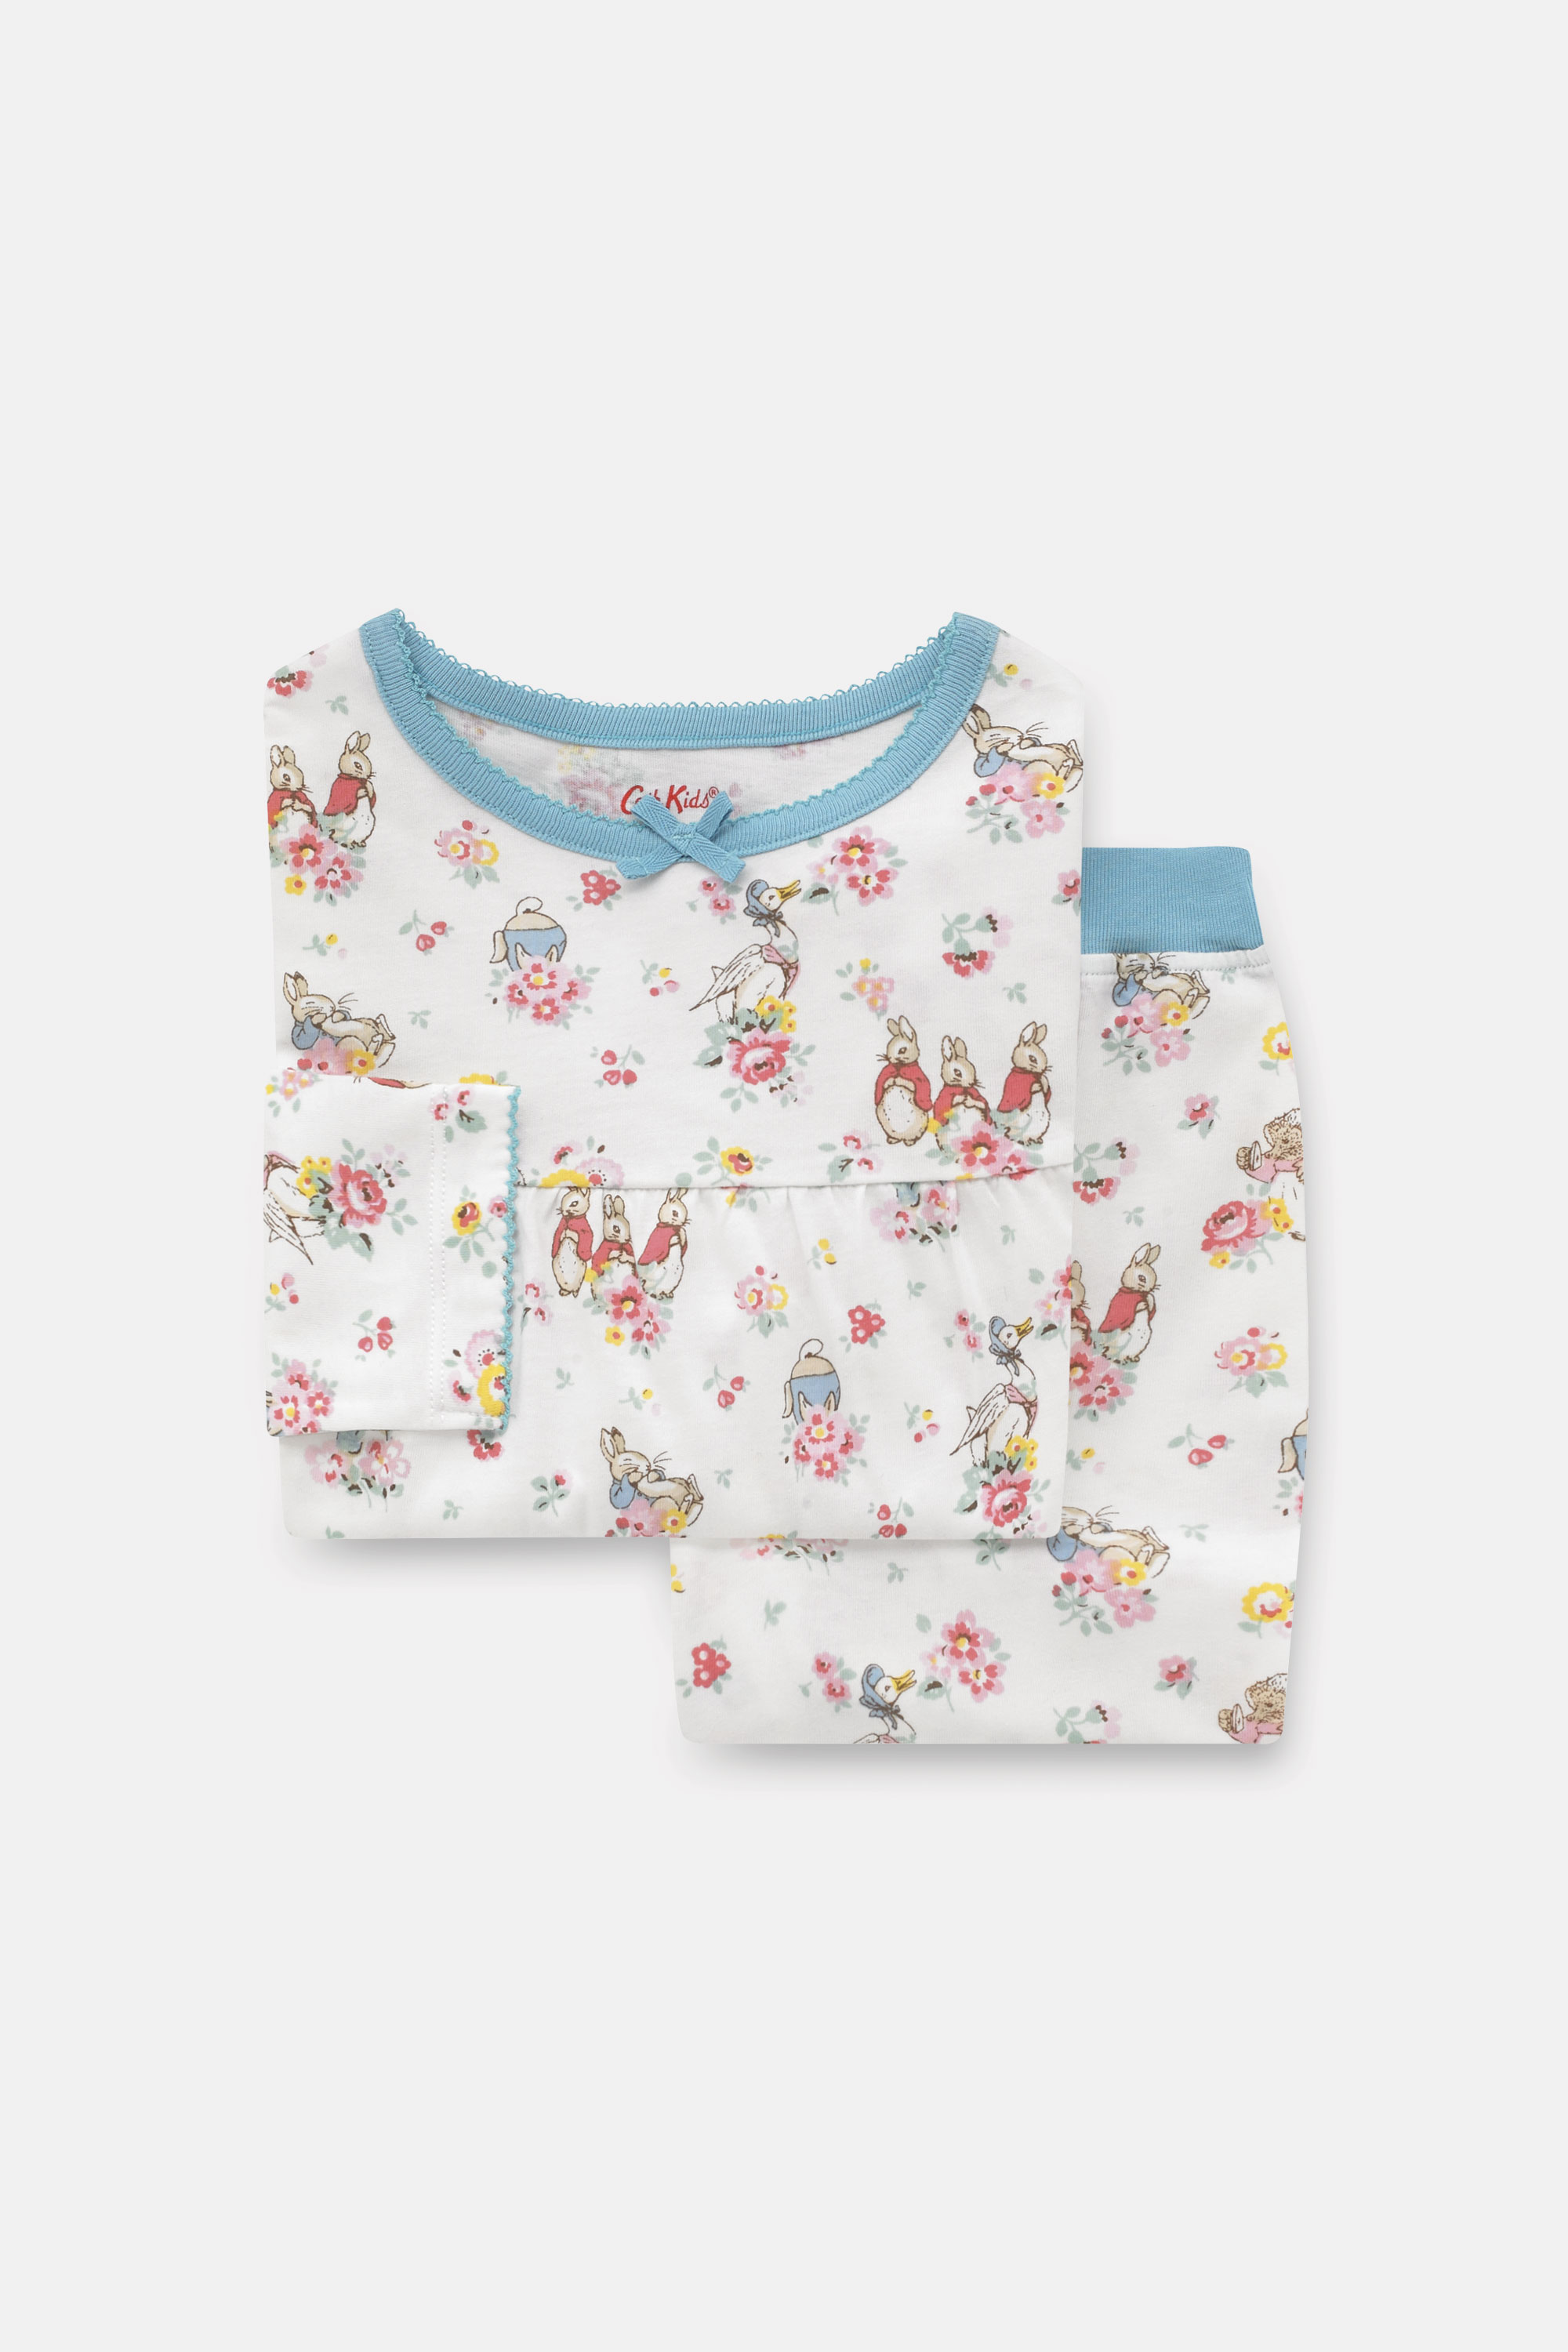 Cath Kidston Peter Rabbit Long Sleeve Jersey Pyjamas in Ivory, 5-6 yr